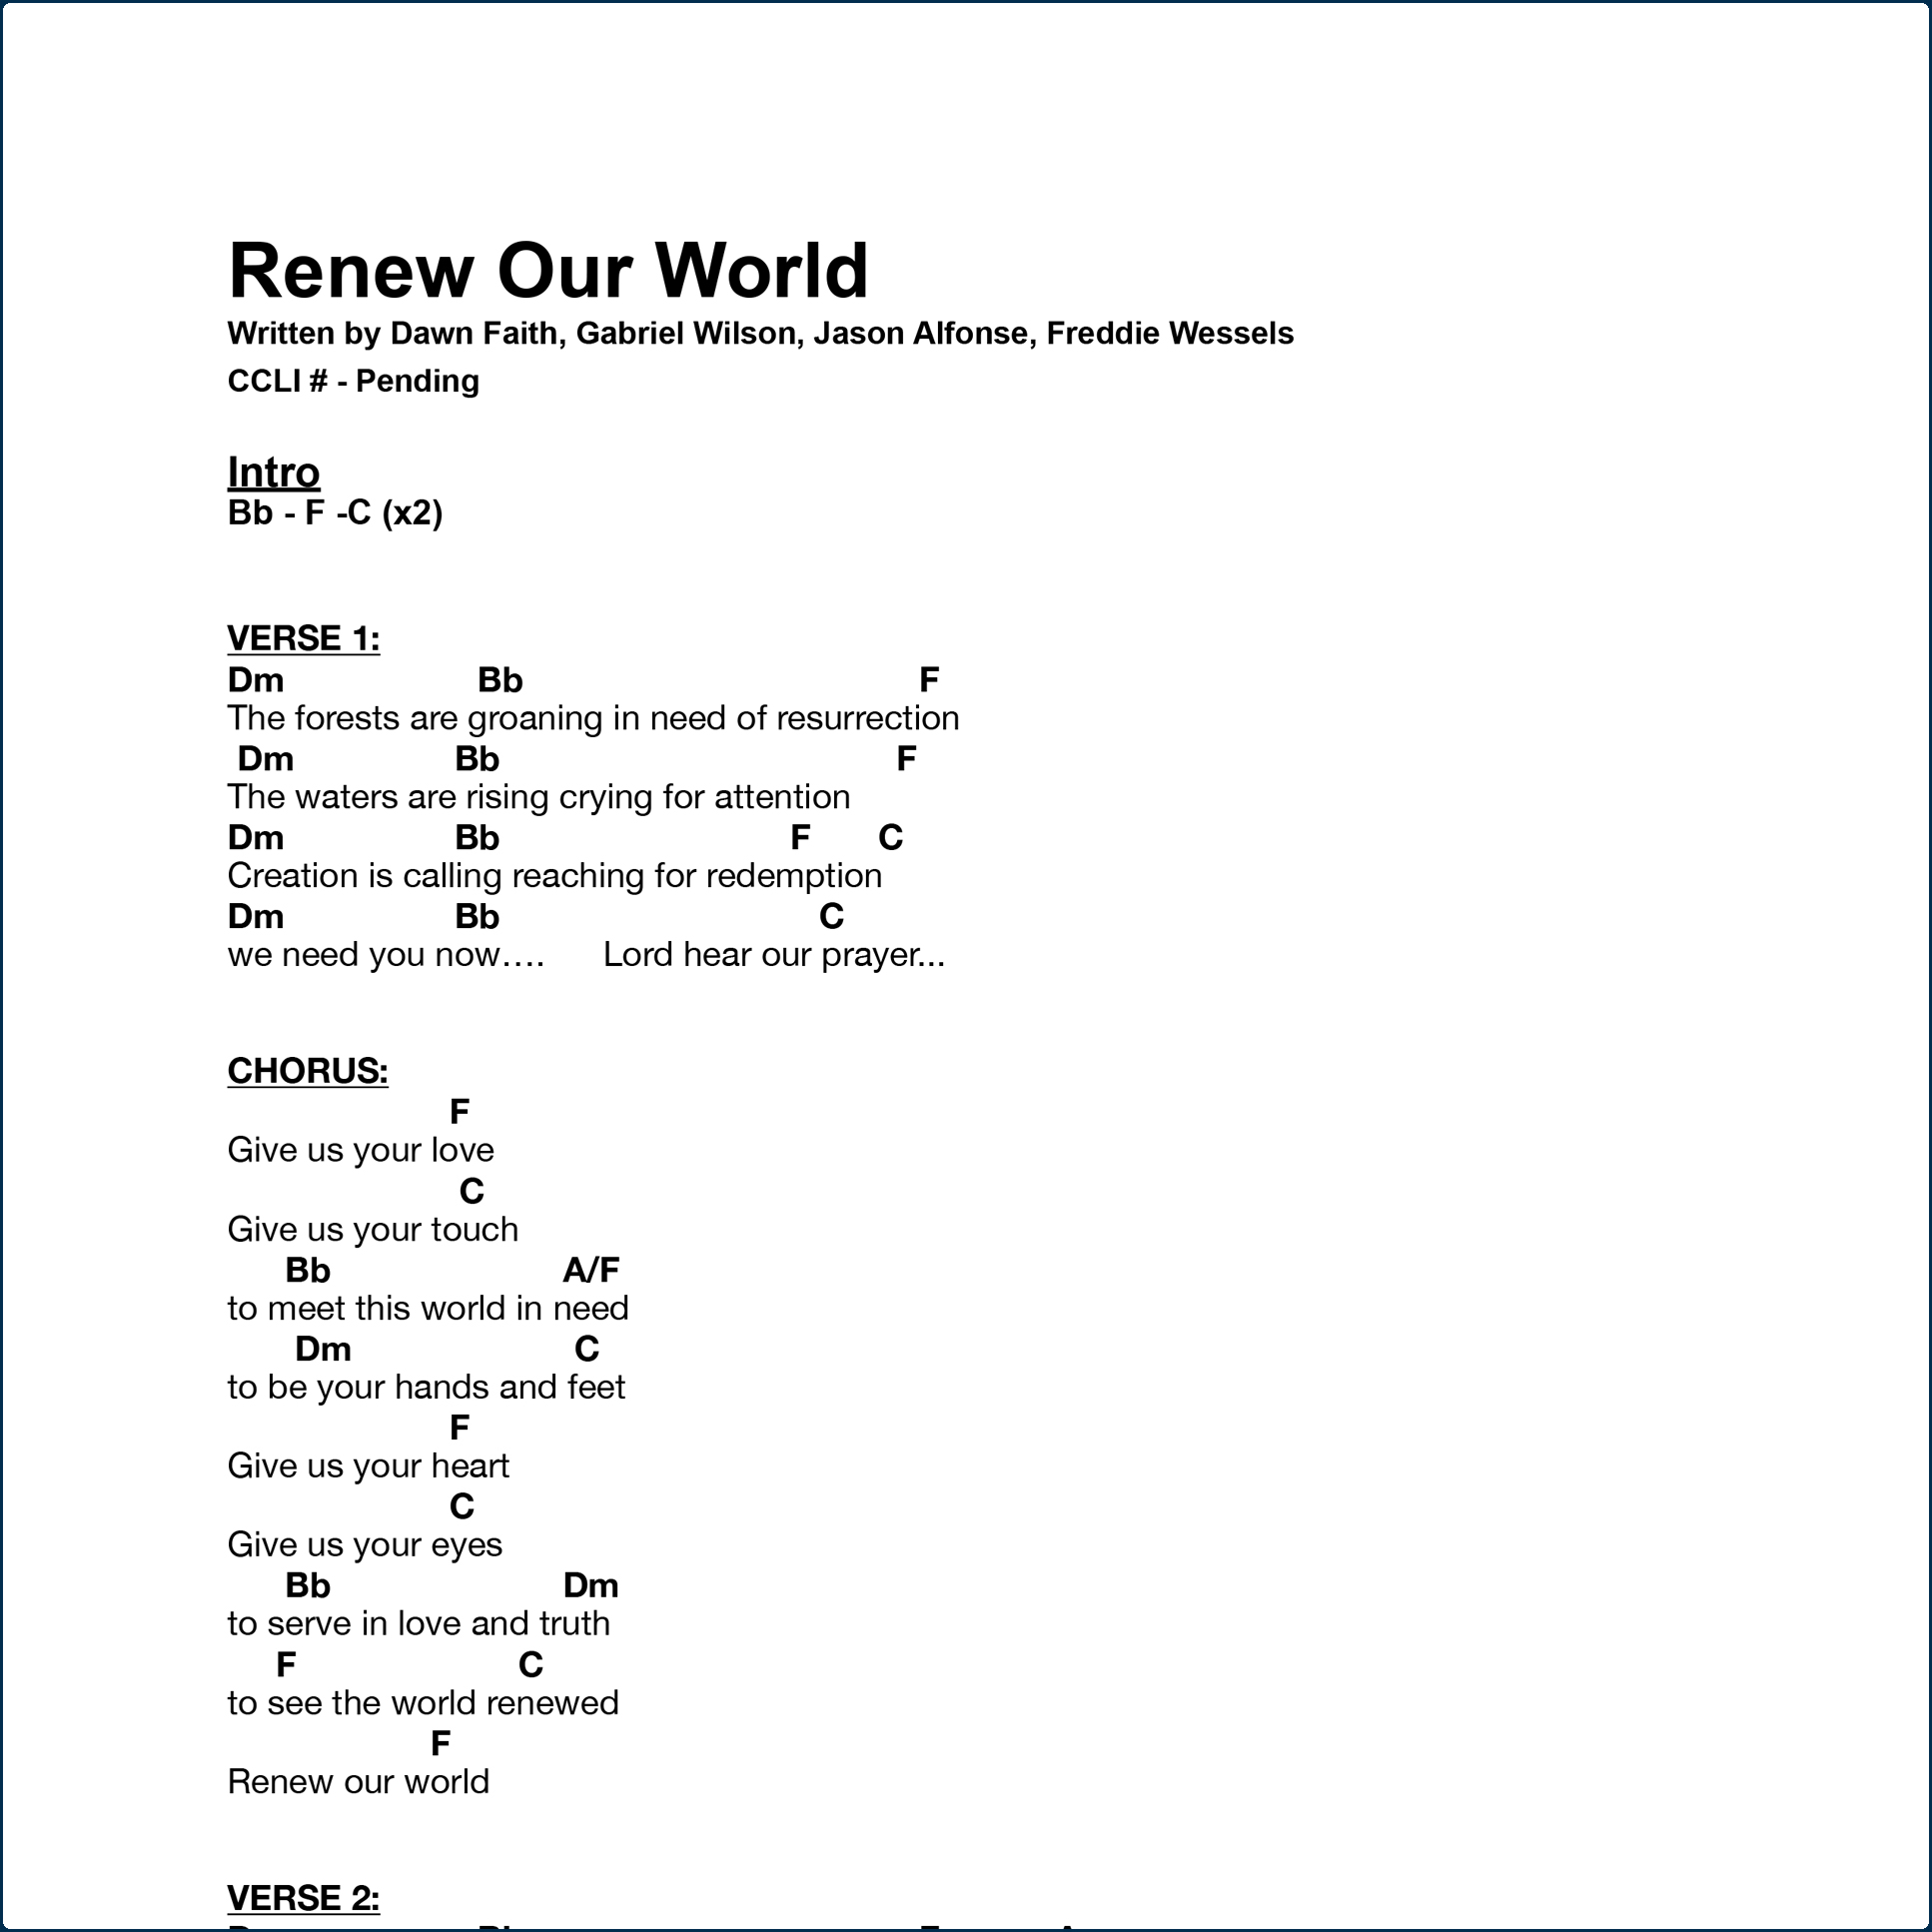 Renew Our World - Chord Chart